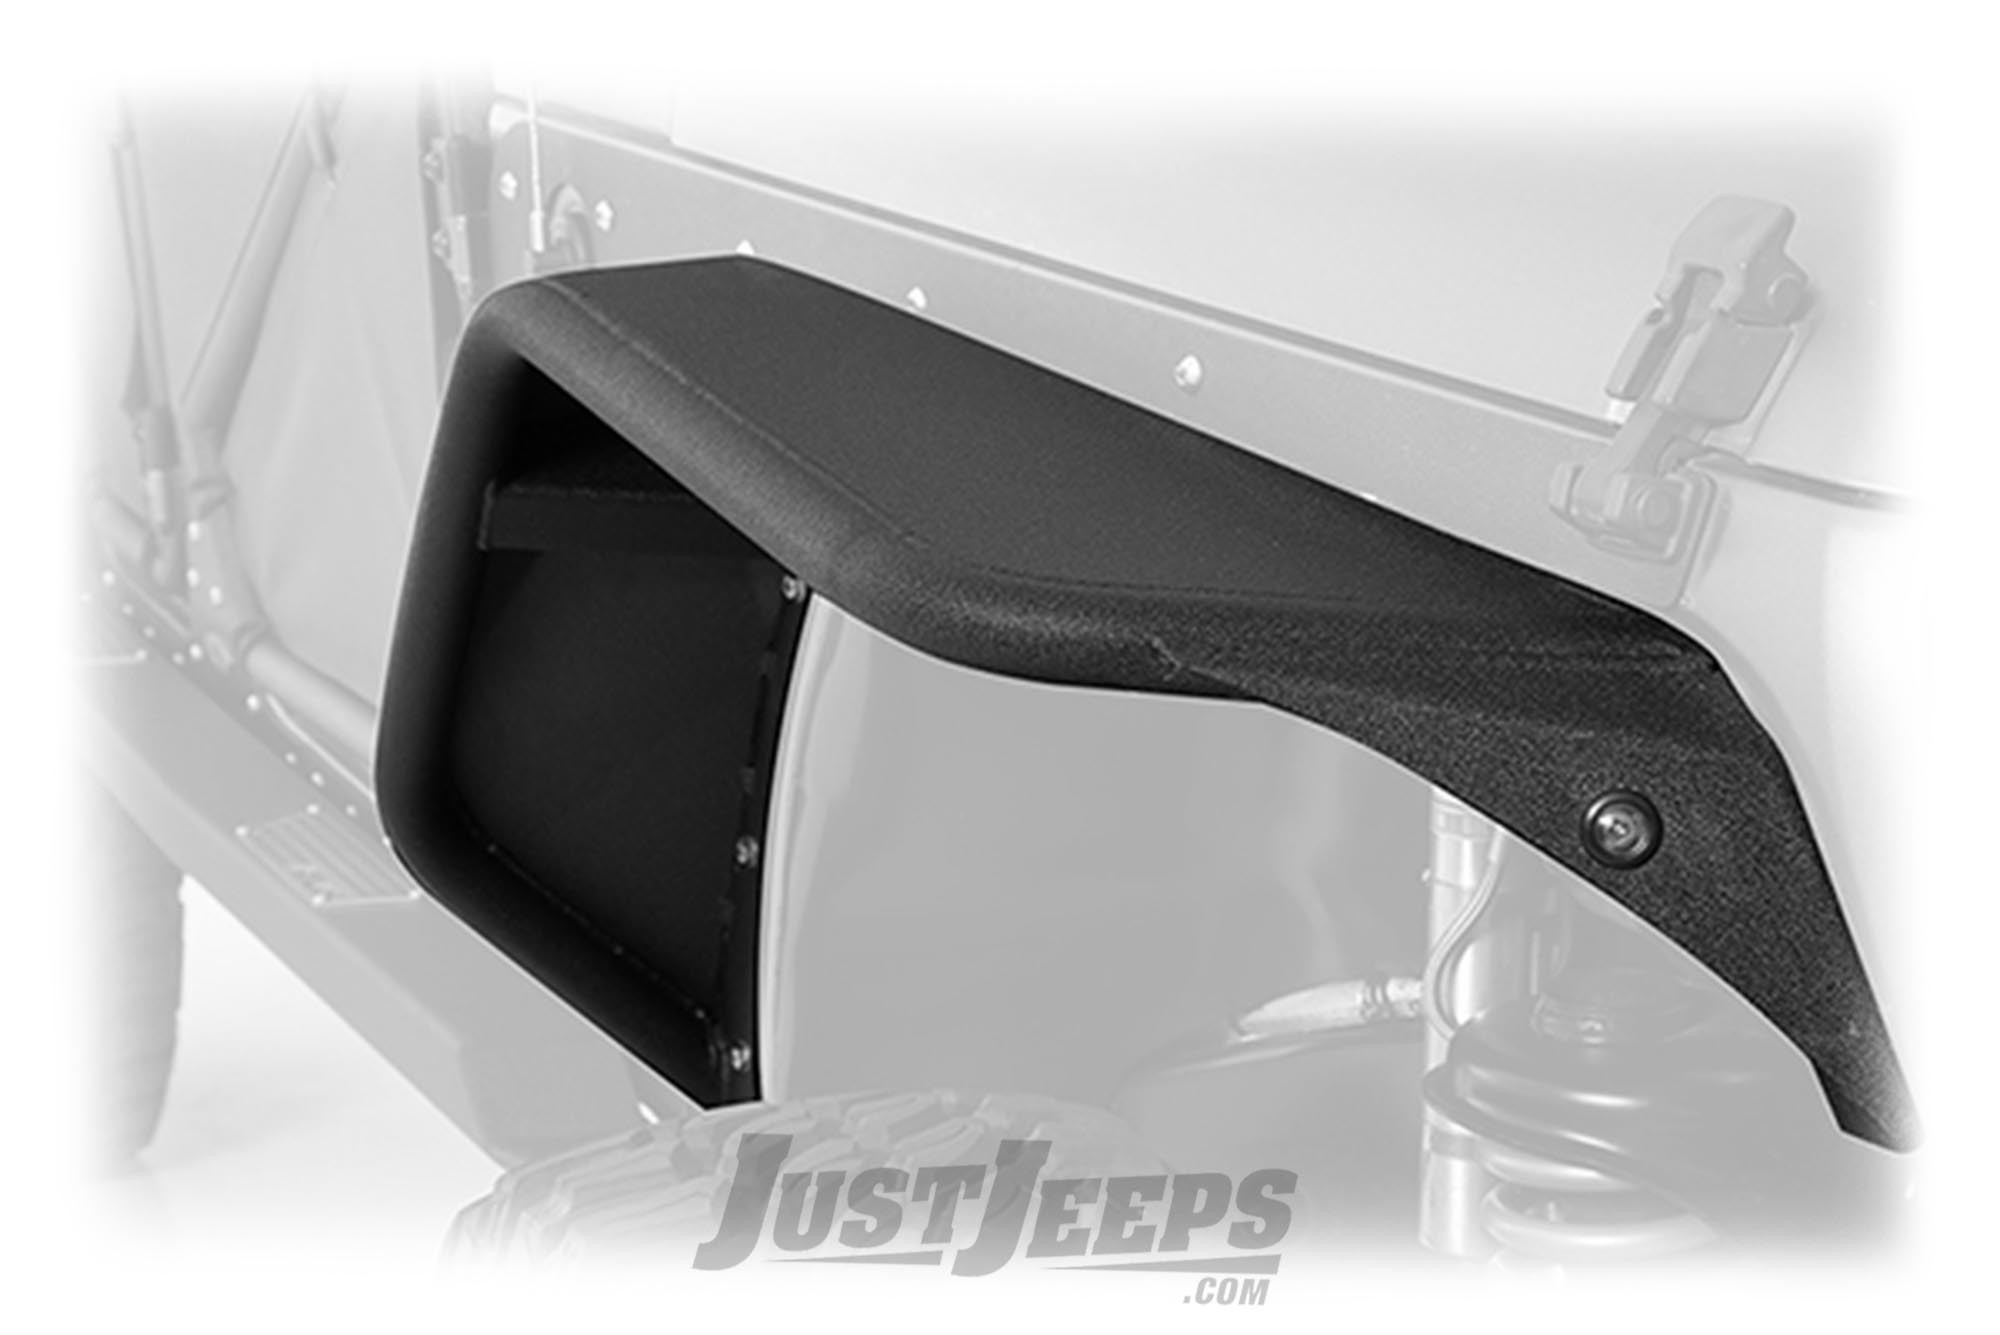 Smittybilt XRC Flux Front Fender Flares For 2007-18 Jeep Wrangler JK 2 Door & Unlimited 4 Door Models